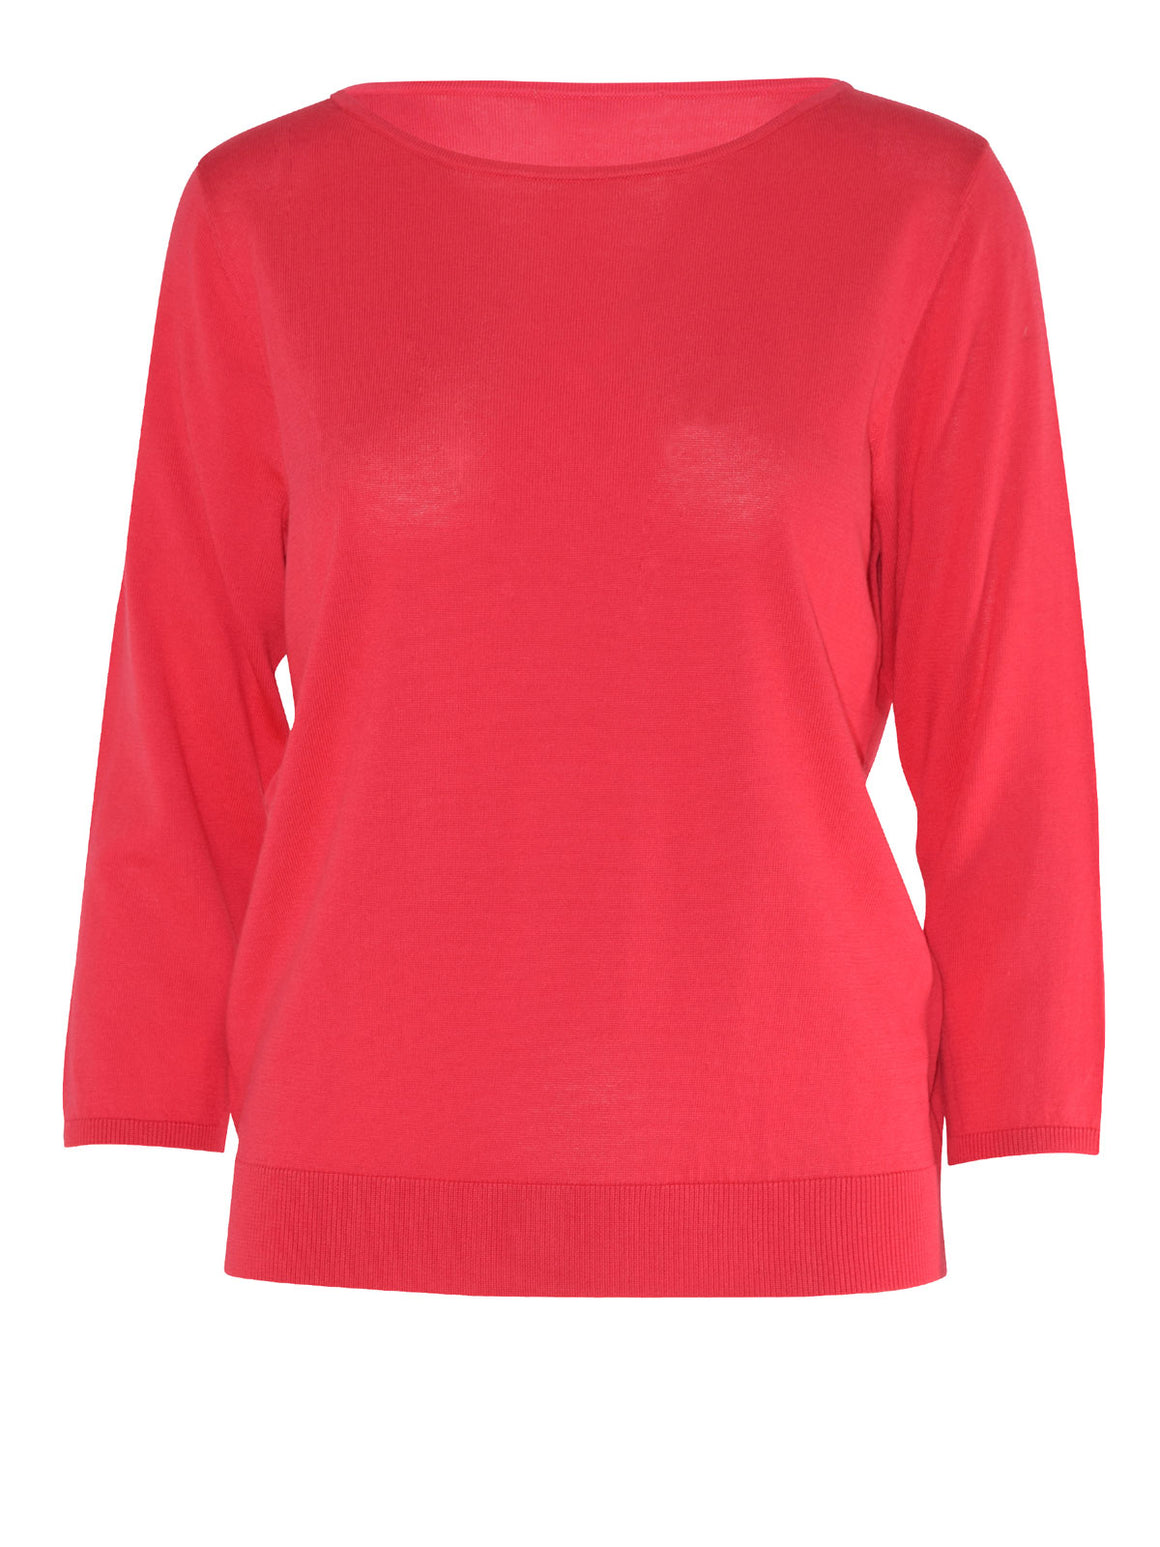 Sills Ramos Boatneck Top Raspberry